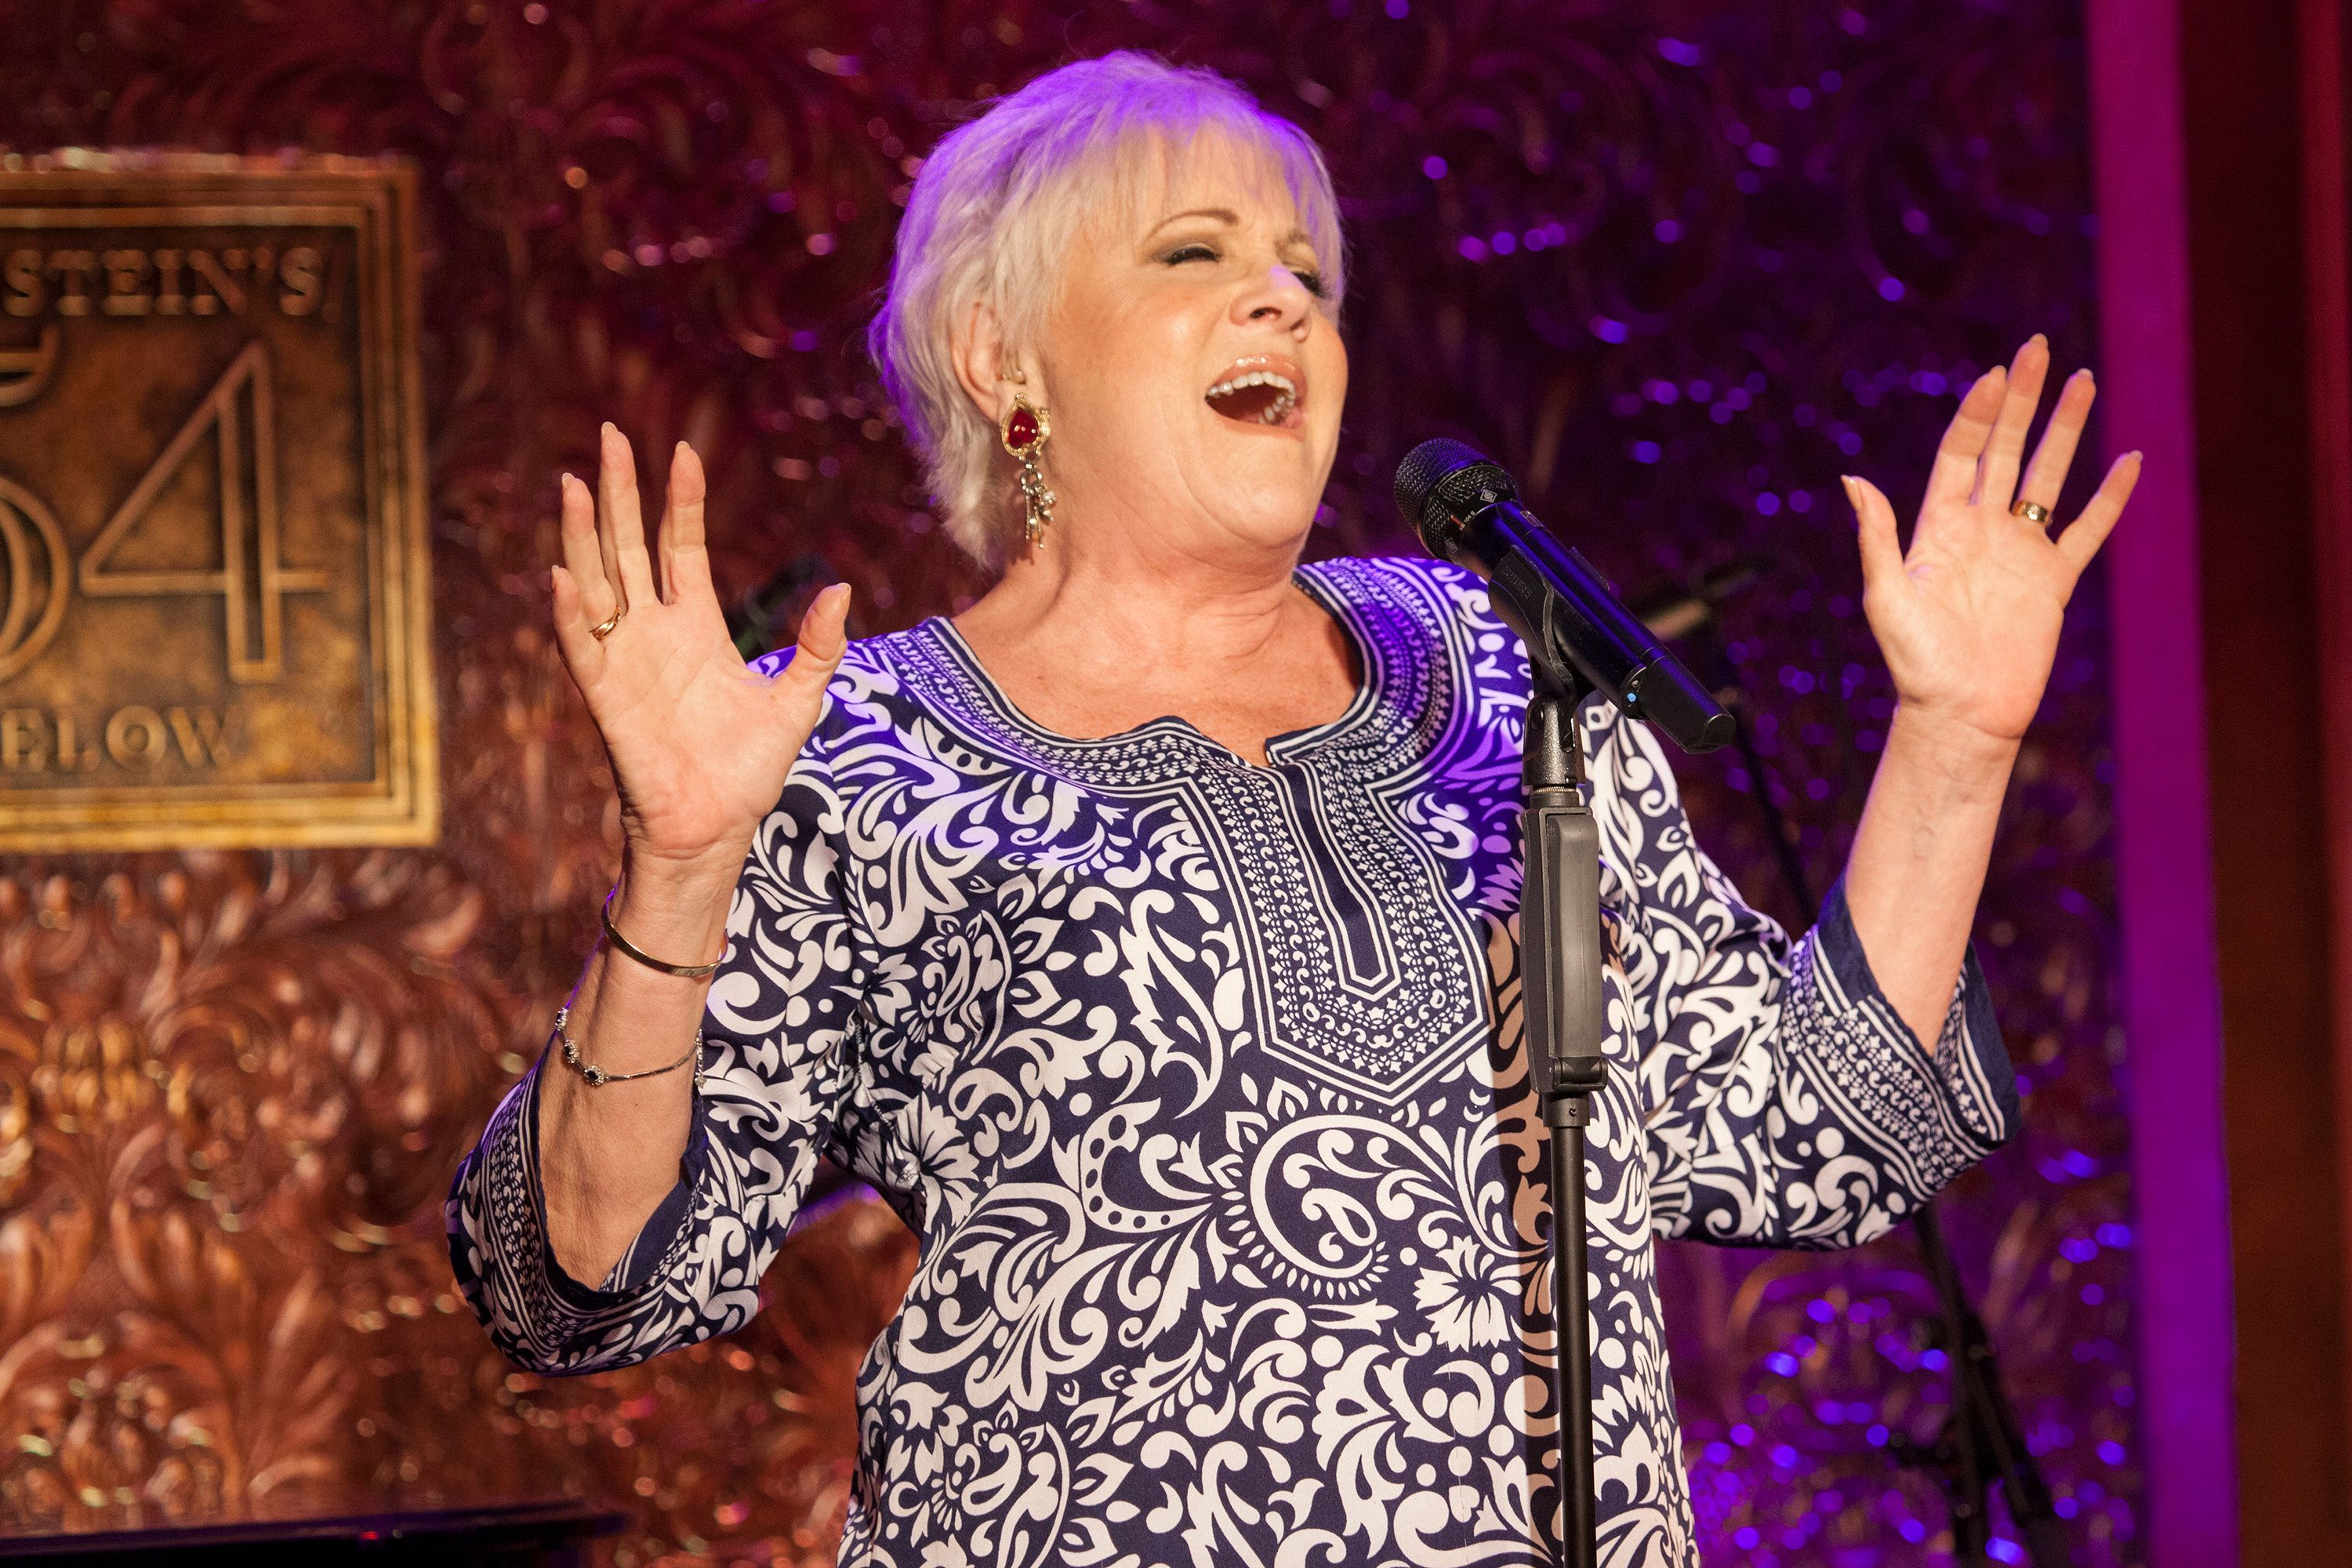 NEW YORK, NY - JUNE 21:  Lorna Luft performs onstage during Feinstein's/54 Below Press Preview at 54 Below on June 21, 2016 in New York City.  (Photo by Santiago Felipe/Getty Images)